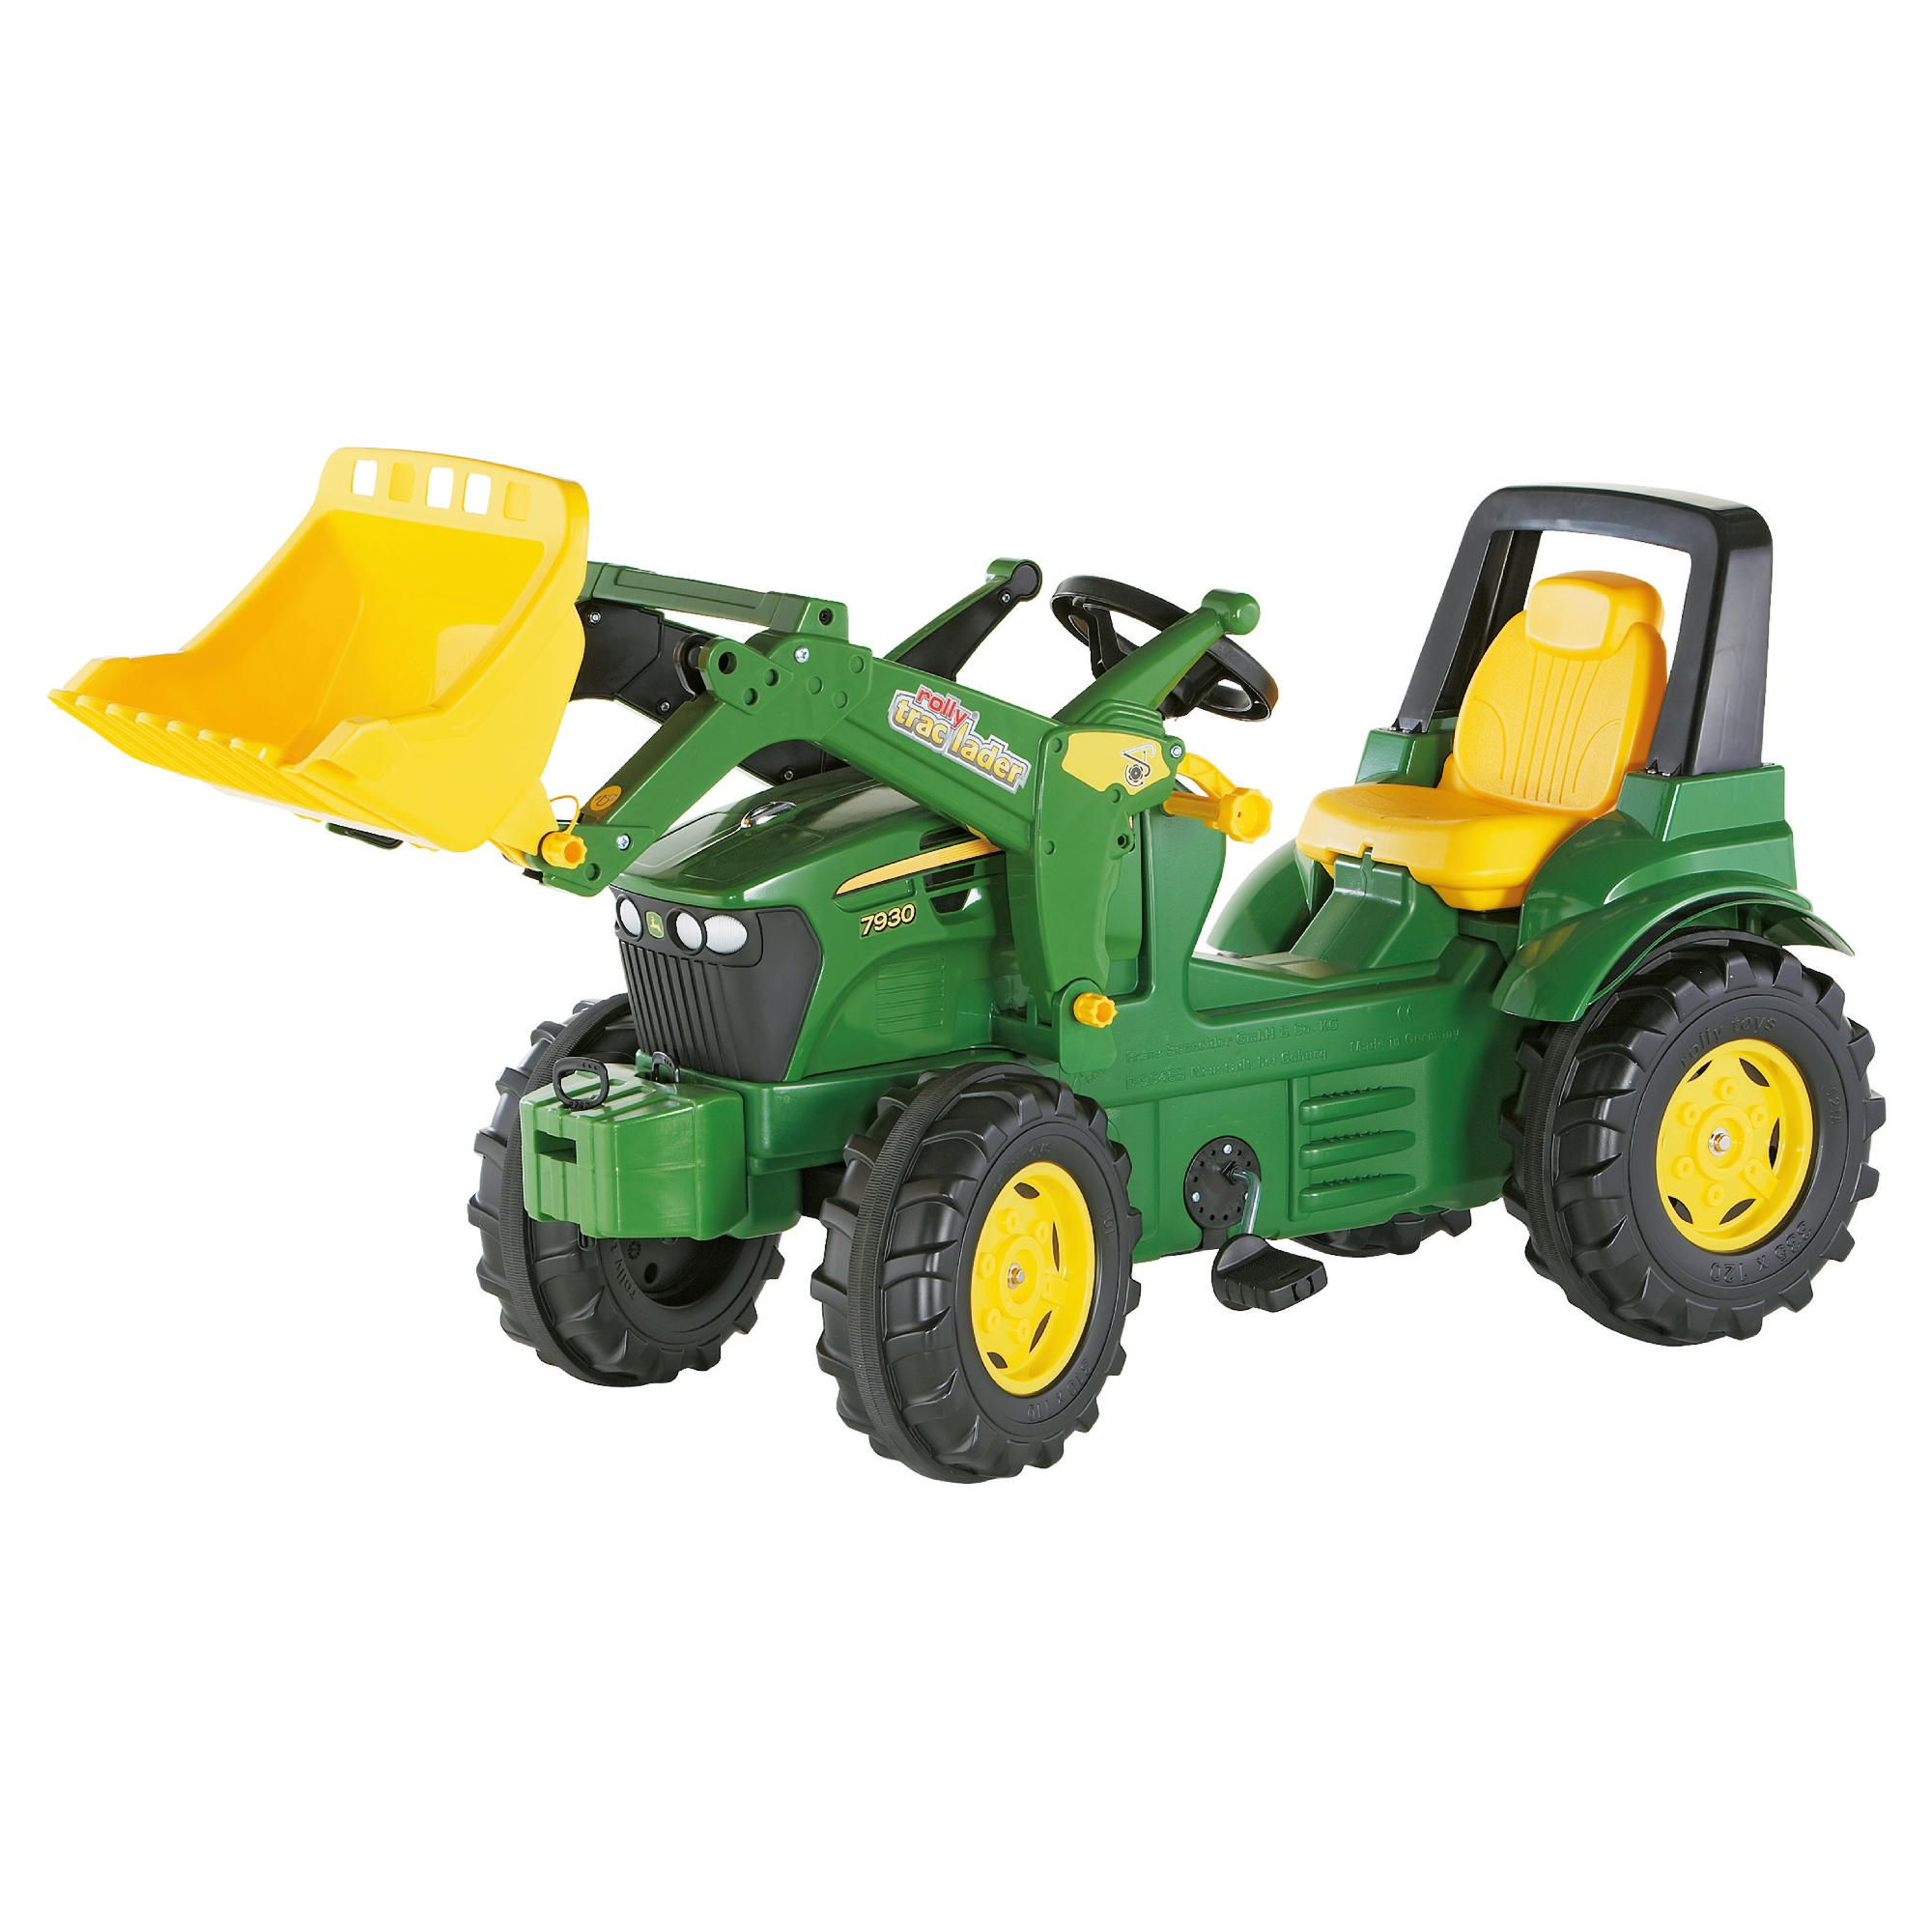 John Deere 7930 Ride-On Tractor With Frontloader at Tesco Direct